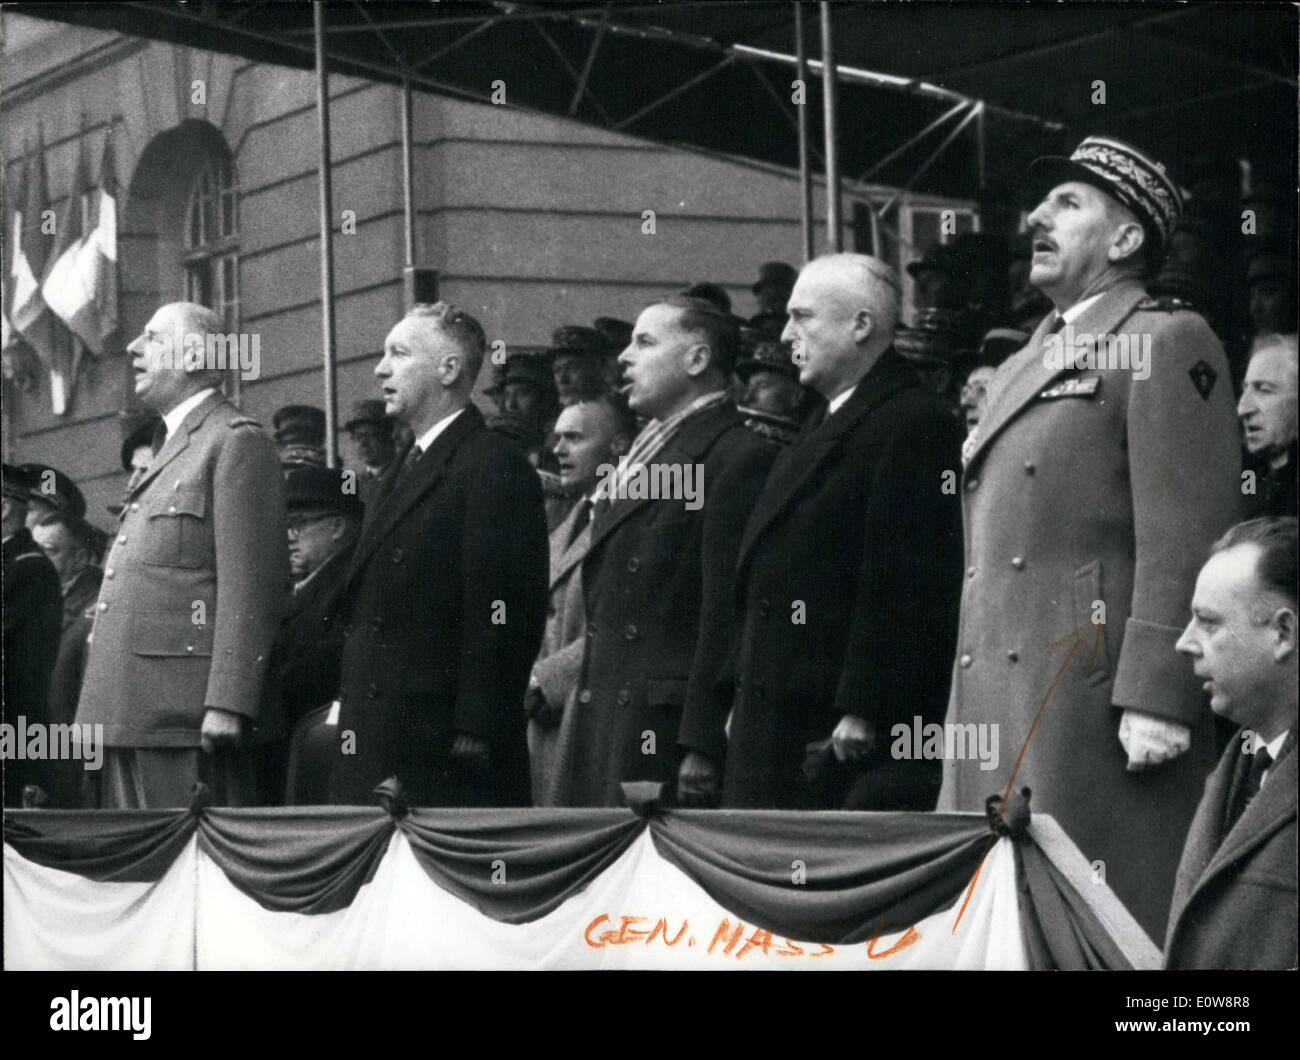 Nov. 23, 1961 - Left to right: General de Gaulle, Minister of Armies Messmer, Veterans Minister Triboulet, Mayor of Strasbourg Pflimlin, and Military Governor General Massu. - Stock Image